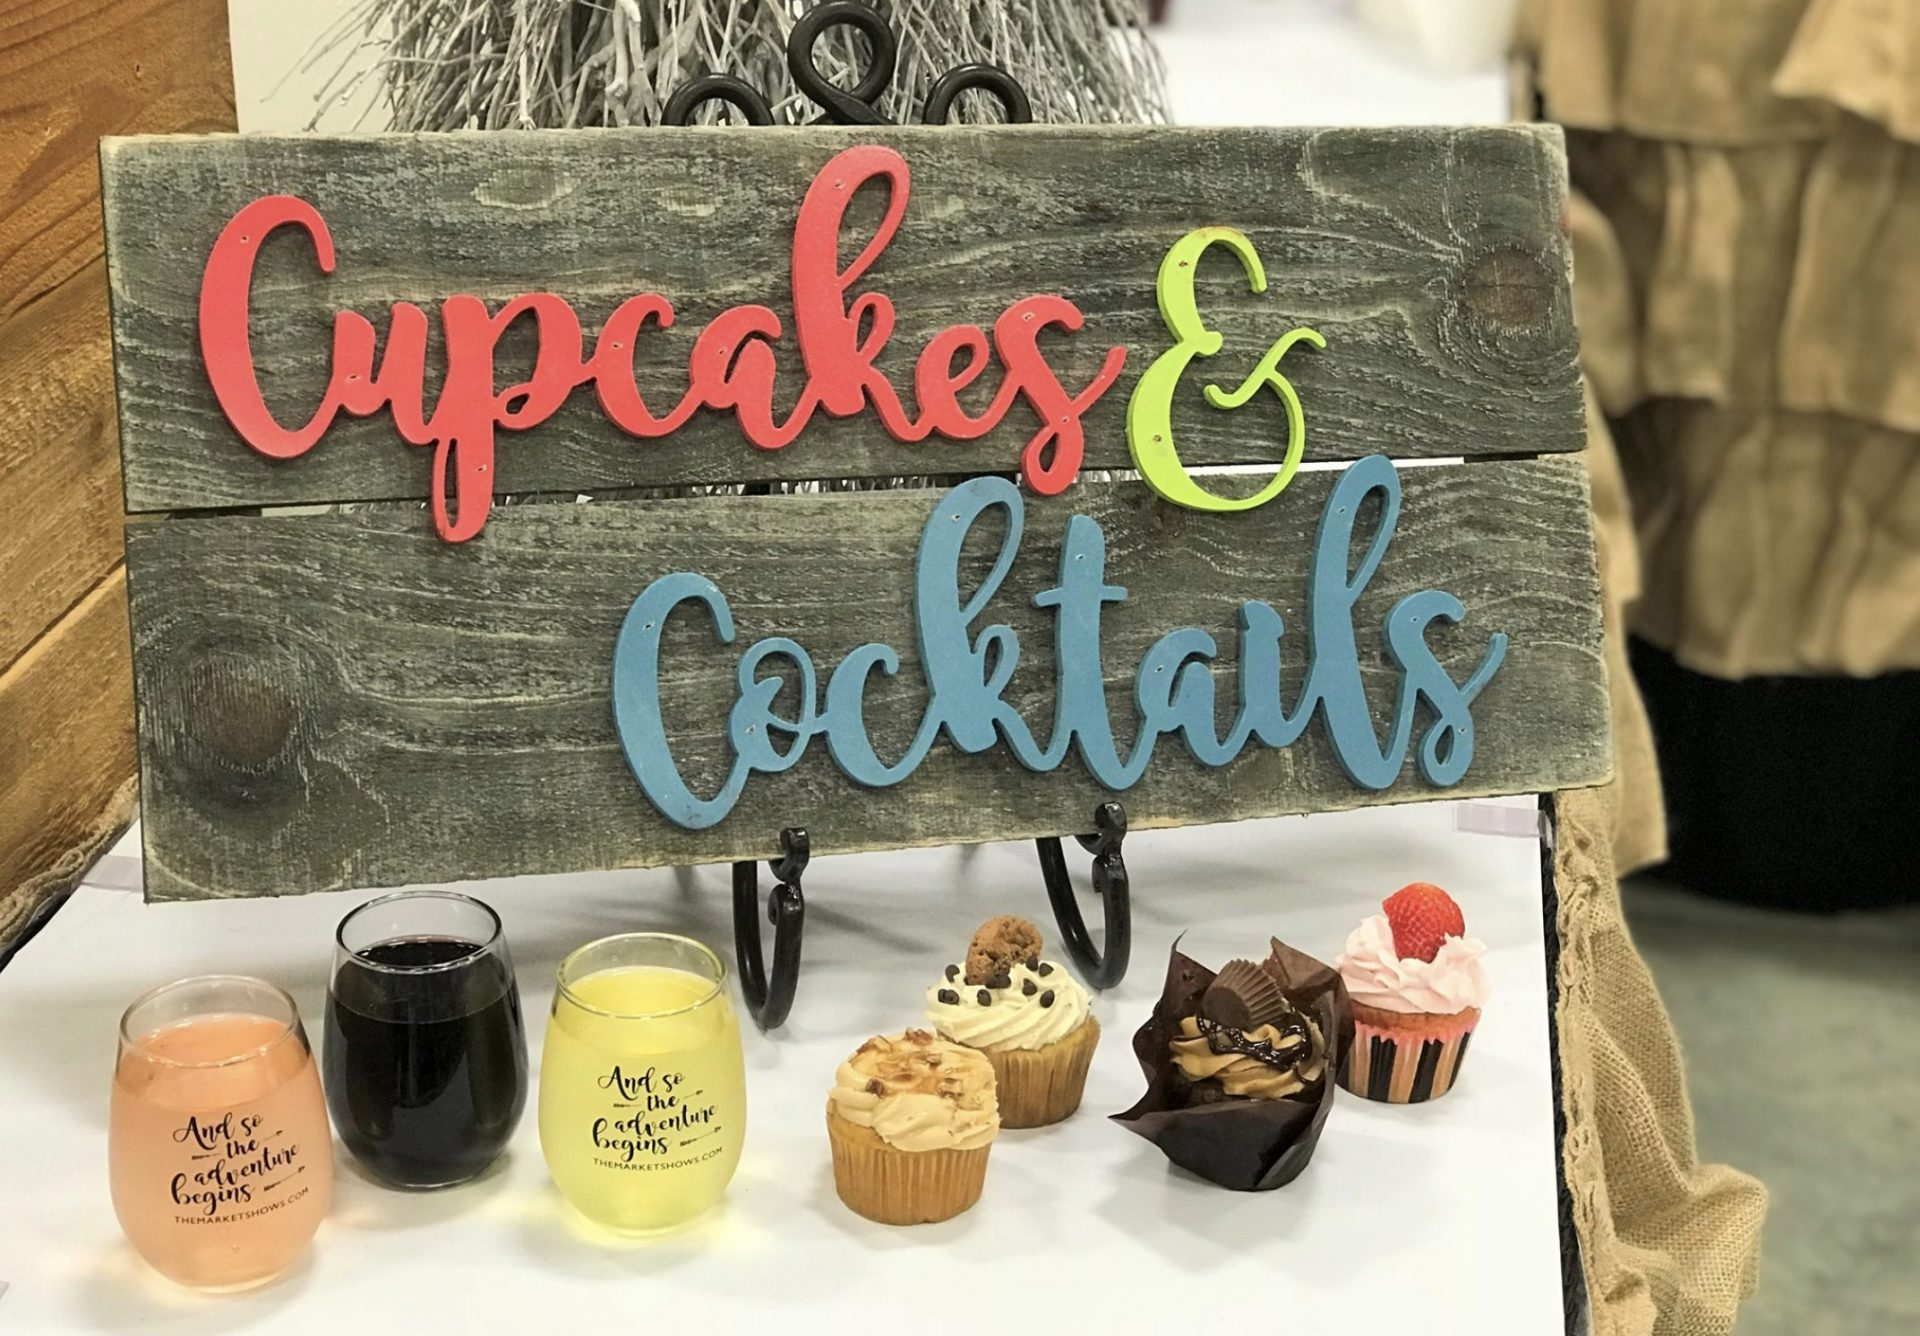 Cupcakes & Cocktails of Jackson | The Market Shows